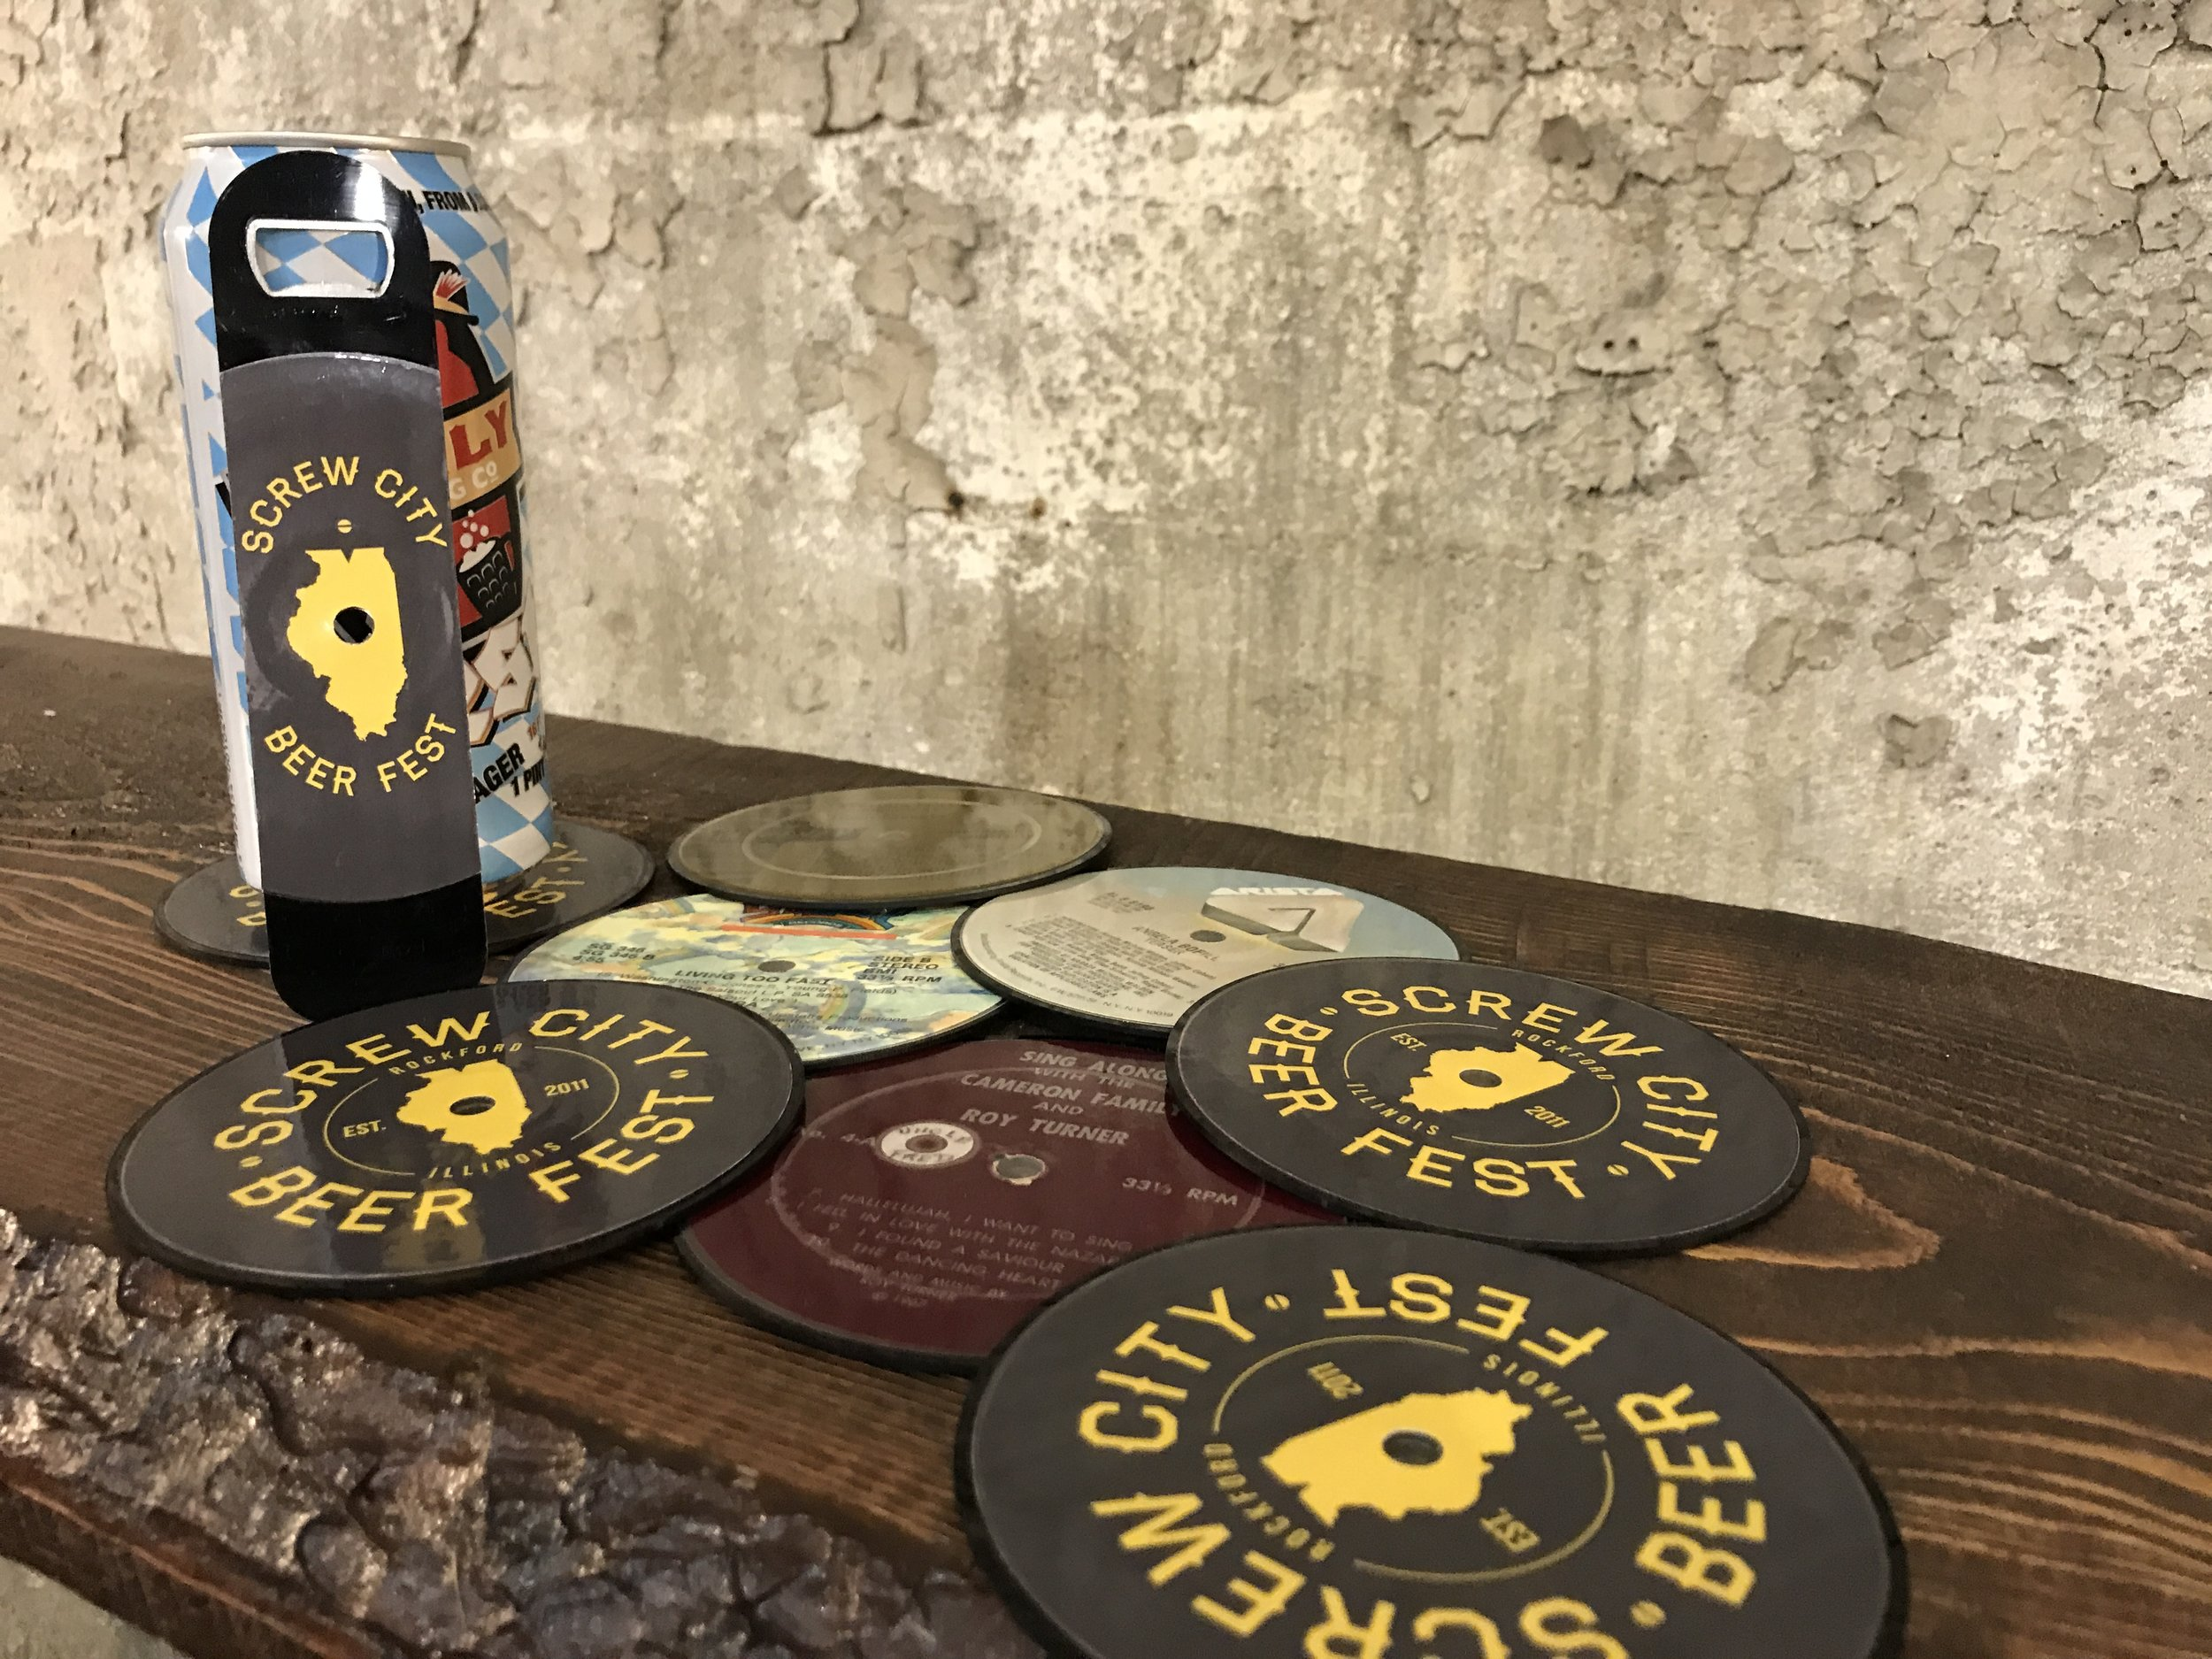 Bottle Openers, Coasters and More!